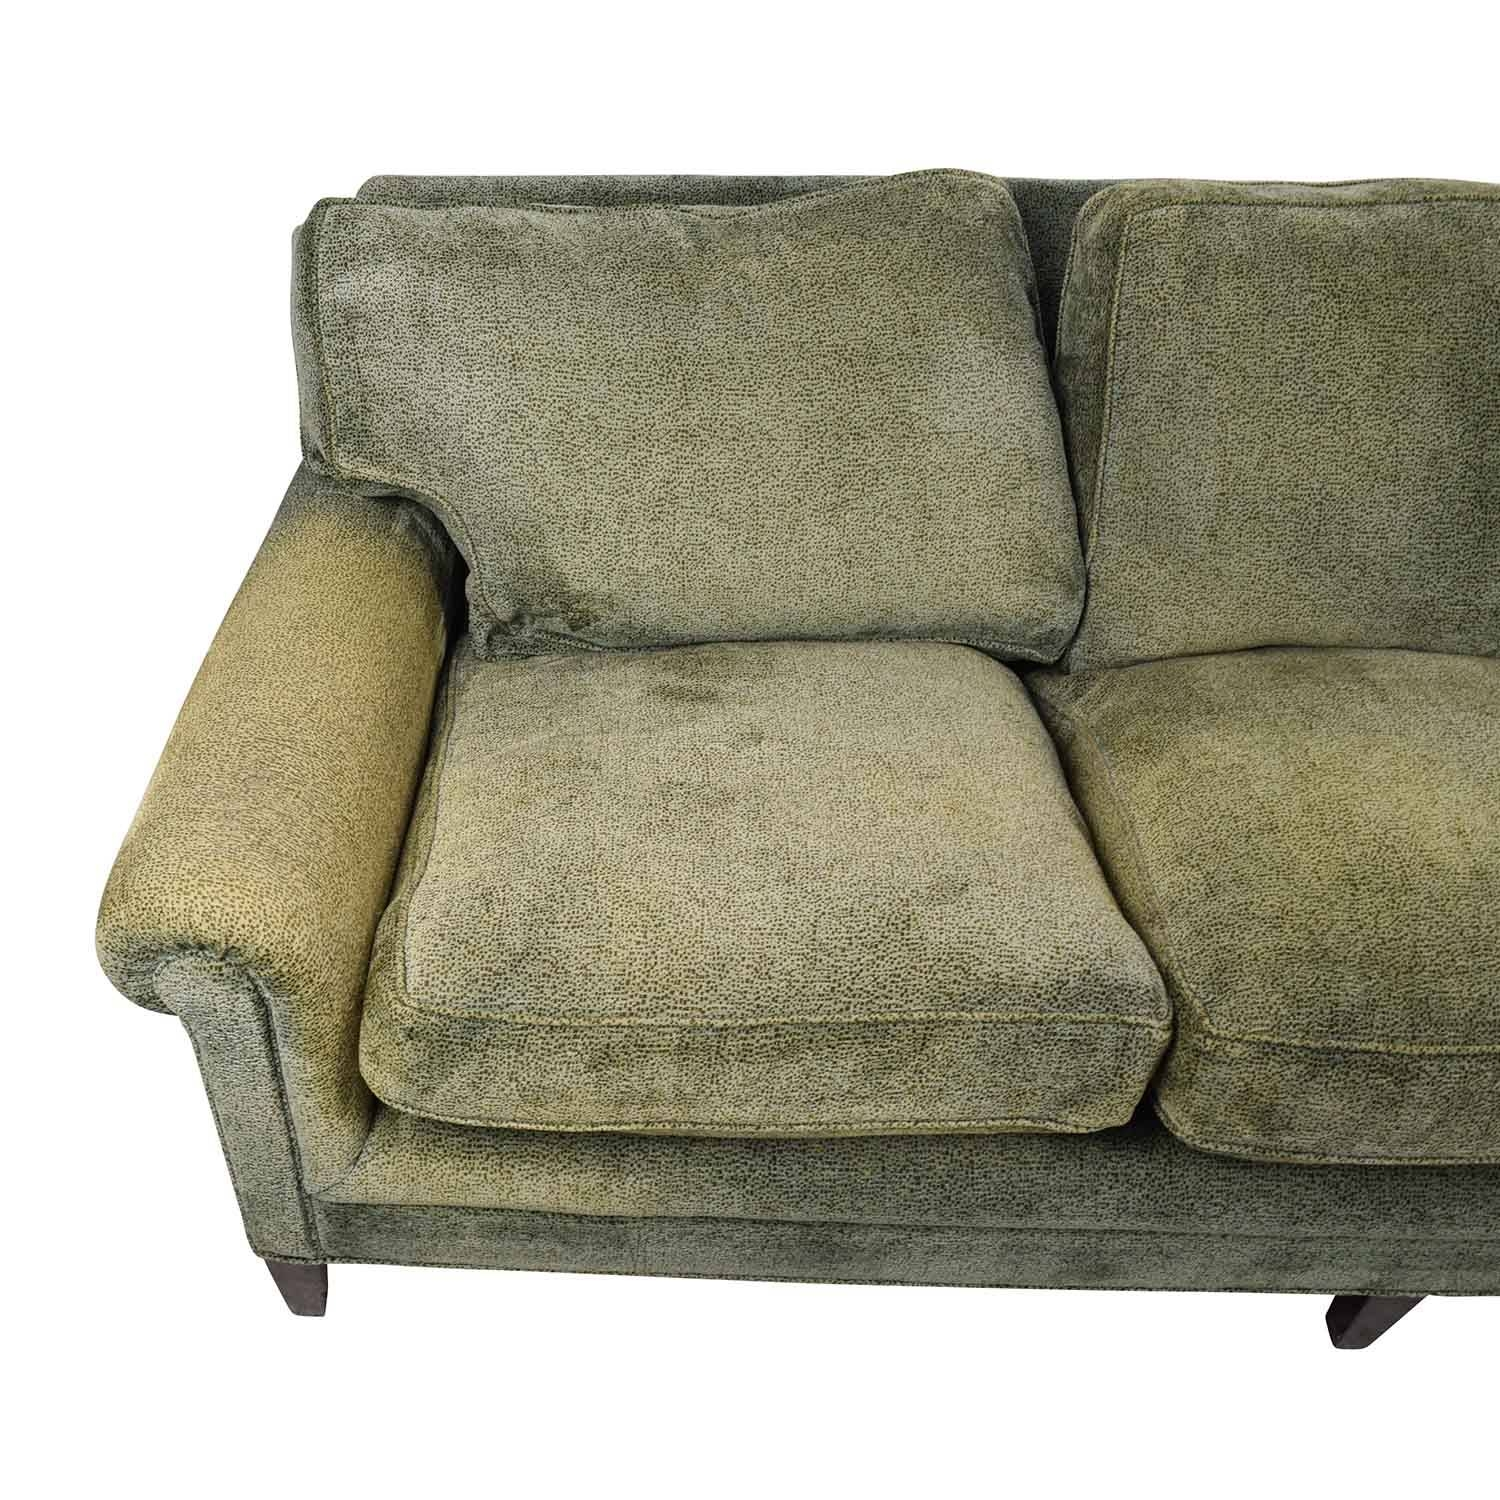 89% Off   George Smith George Smith Classic English Style Sofa / Sofas With Regard To Classic Sofas For Sale (Photo 18 of 30)